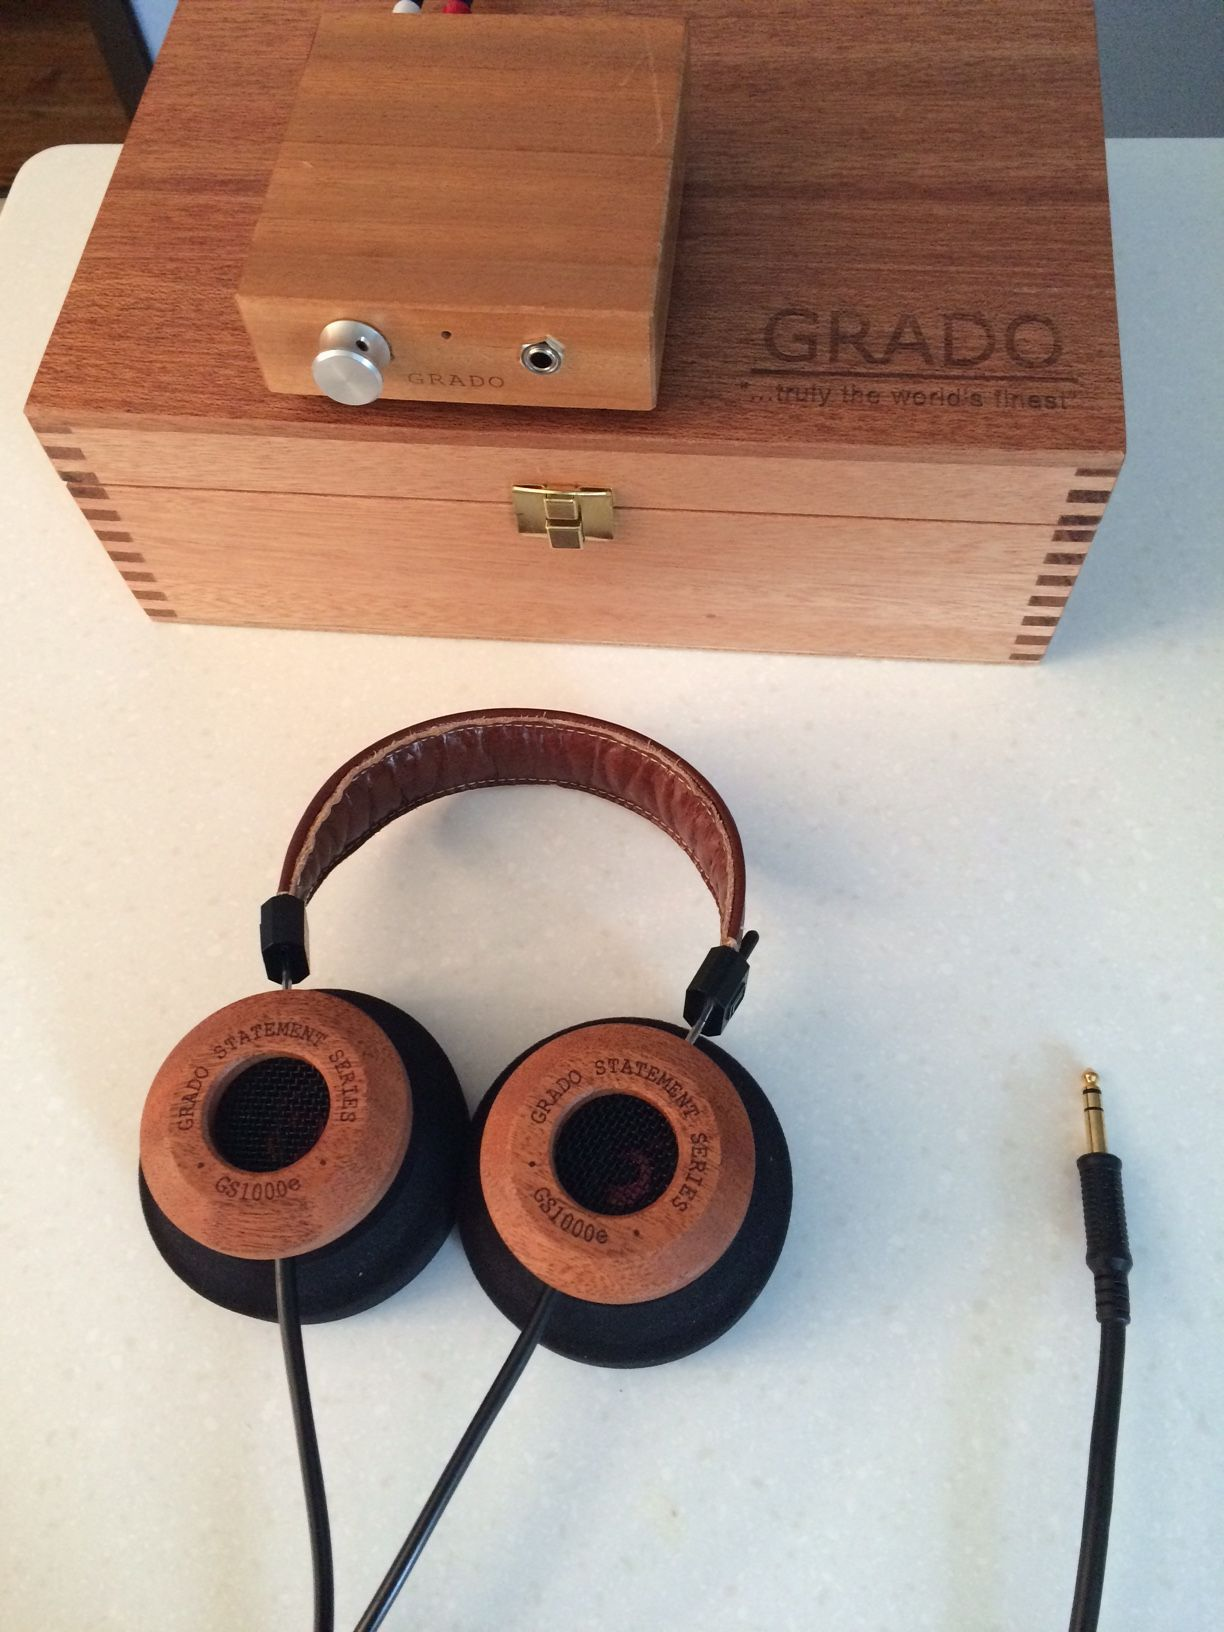 Grado Fan Club Page 1656 Headphone Reviews And Discussion Sr125 Wiring Diagram Gs1000e Headphones With Box Ra1 Amp Not Used